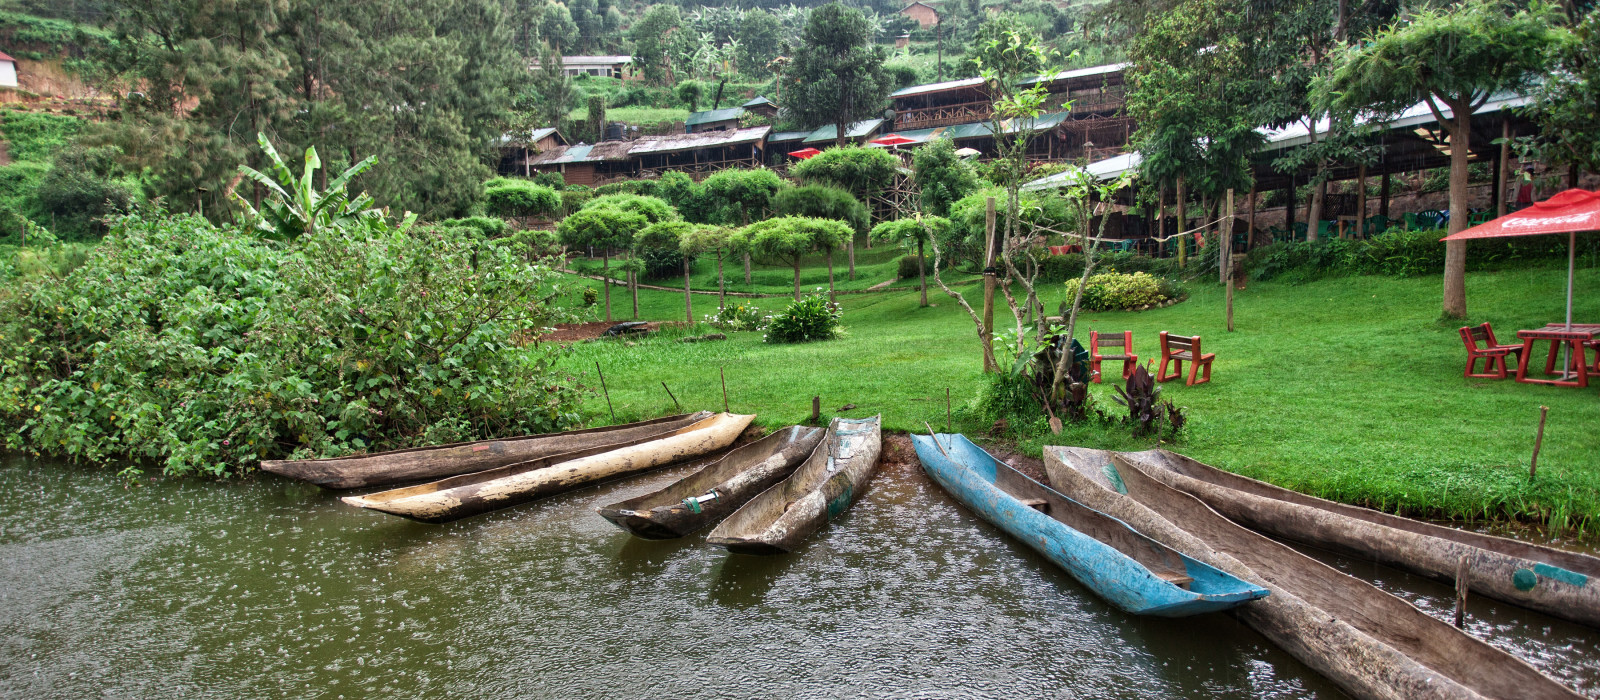 Traditionelle Boote am See Bunyonyi in Uganda, Afrika